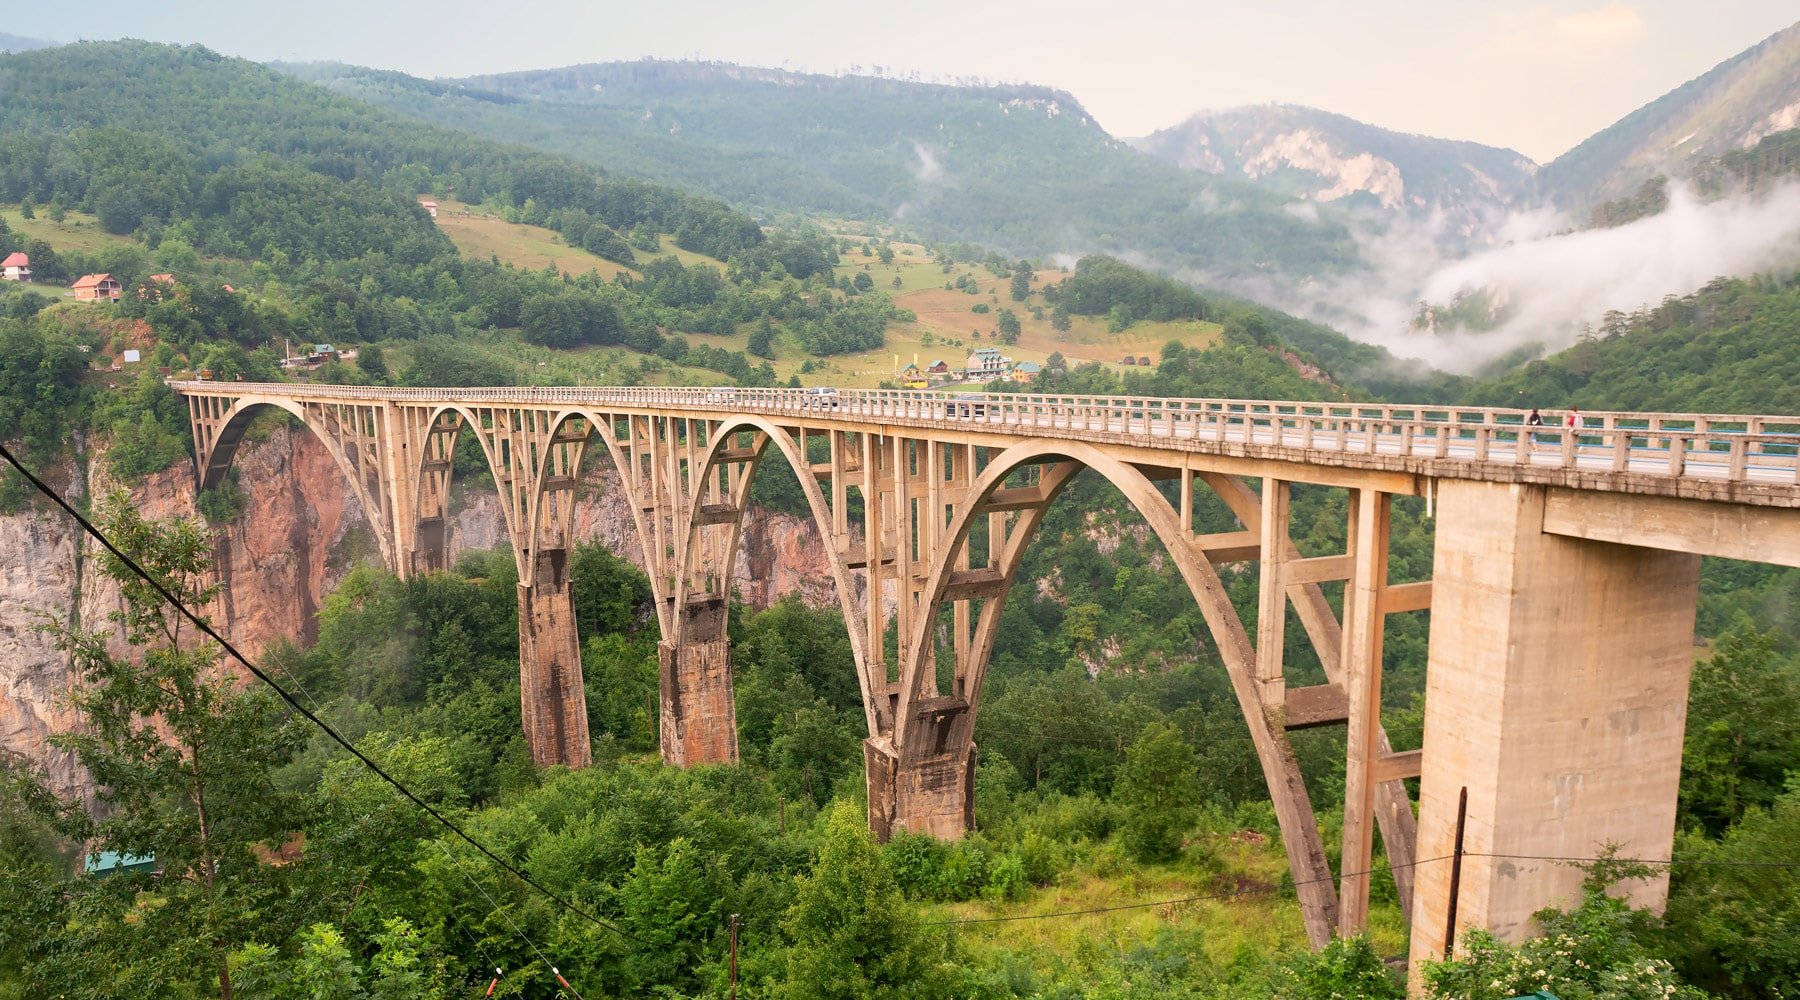 Tara River Canyon – The World's Second Largest Canyon